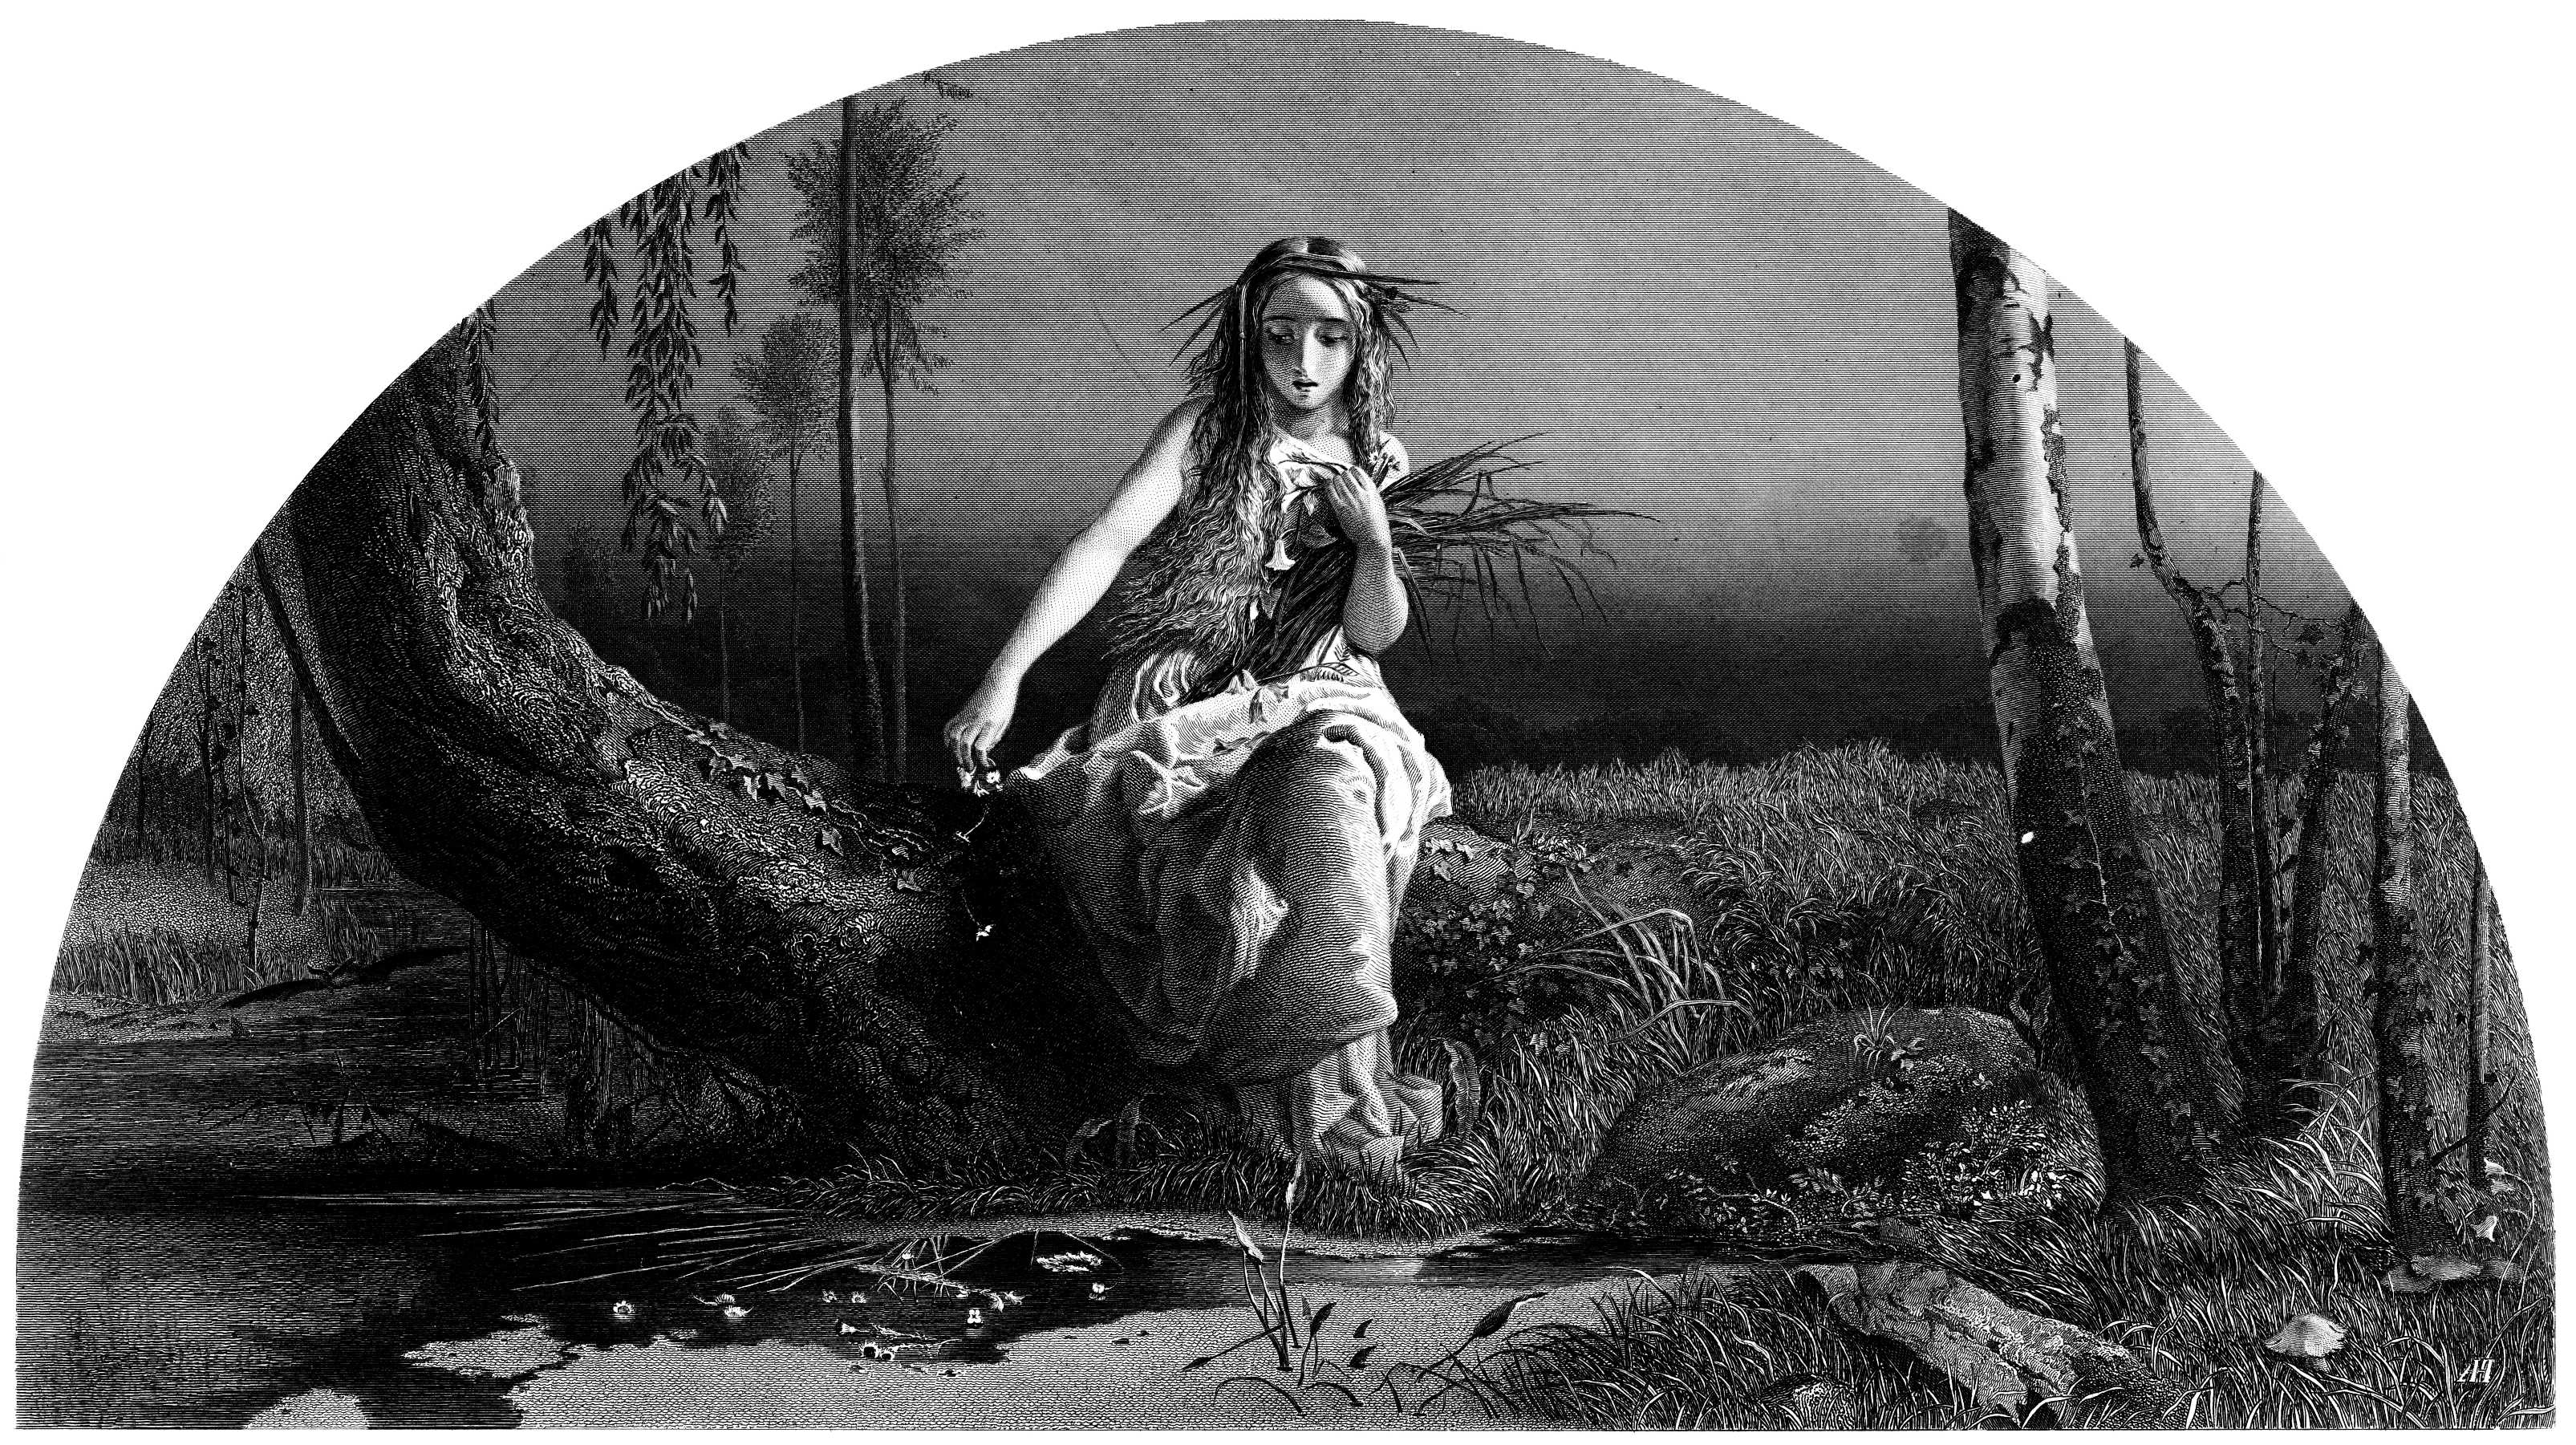 ophelia as an innocent victim in hamlet by william shakespeare In william shakespeare's play the tragedy of hamlet, prince of denmark, though the protagonist hamlet pretends to be mad as he seeks revenge for the murder of his father, he is suffering from depression and a barely contained rage towards the people closest to him as revealed in his treatment of gertrude and ophelia, rosencrantz and guildenstern, and polonius and claudius.